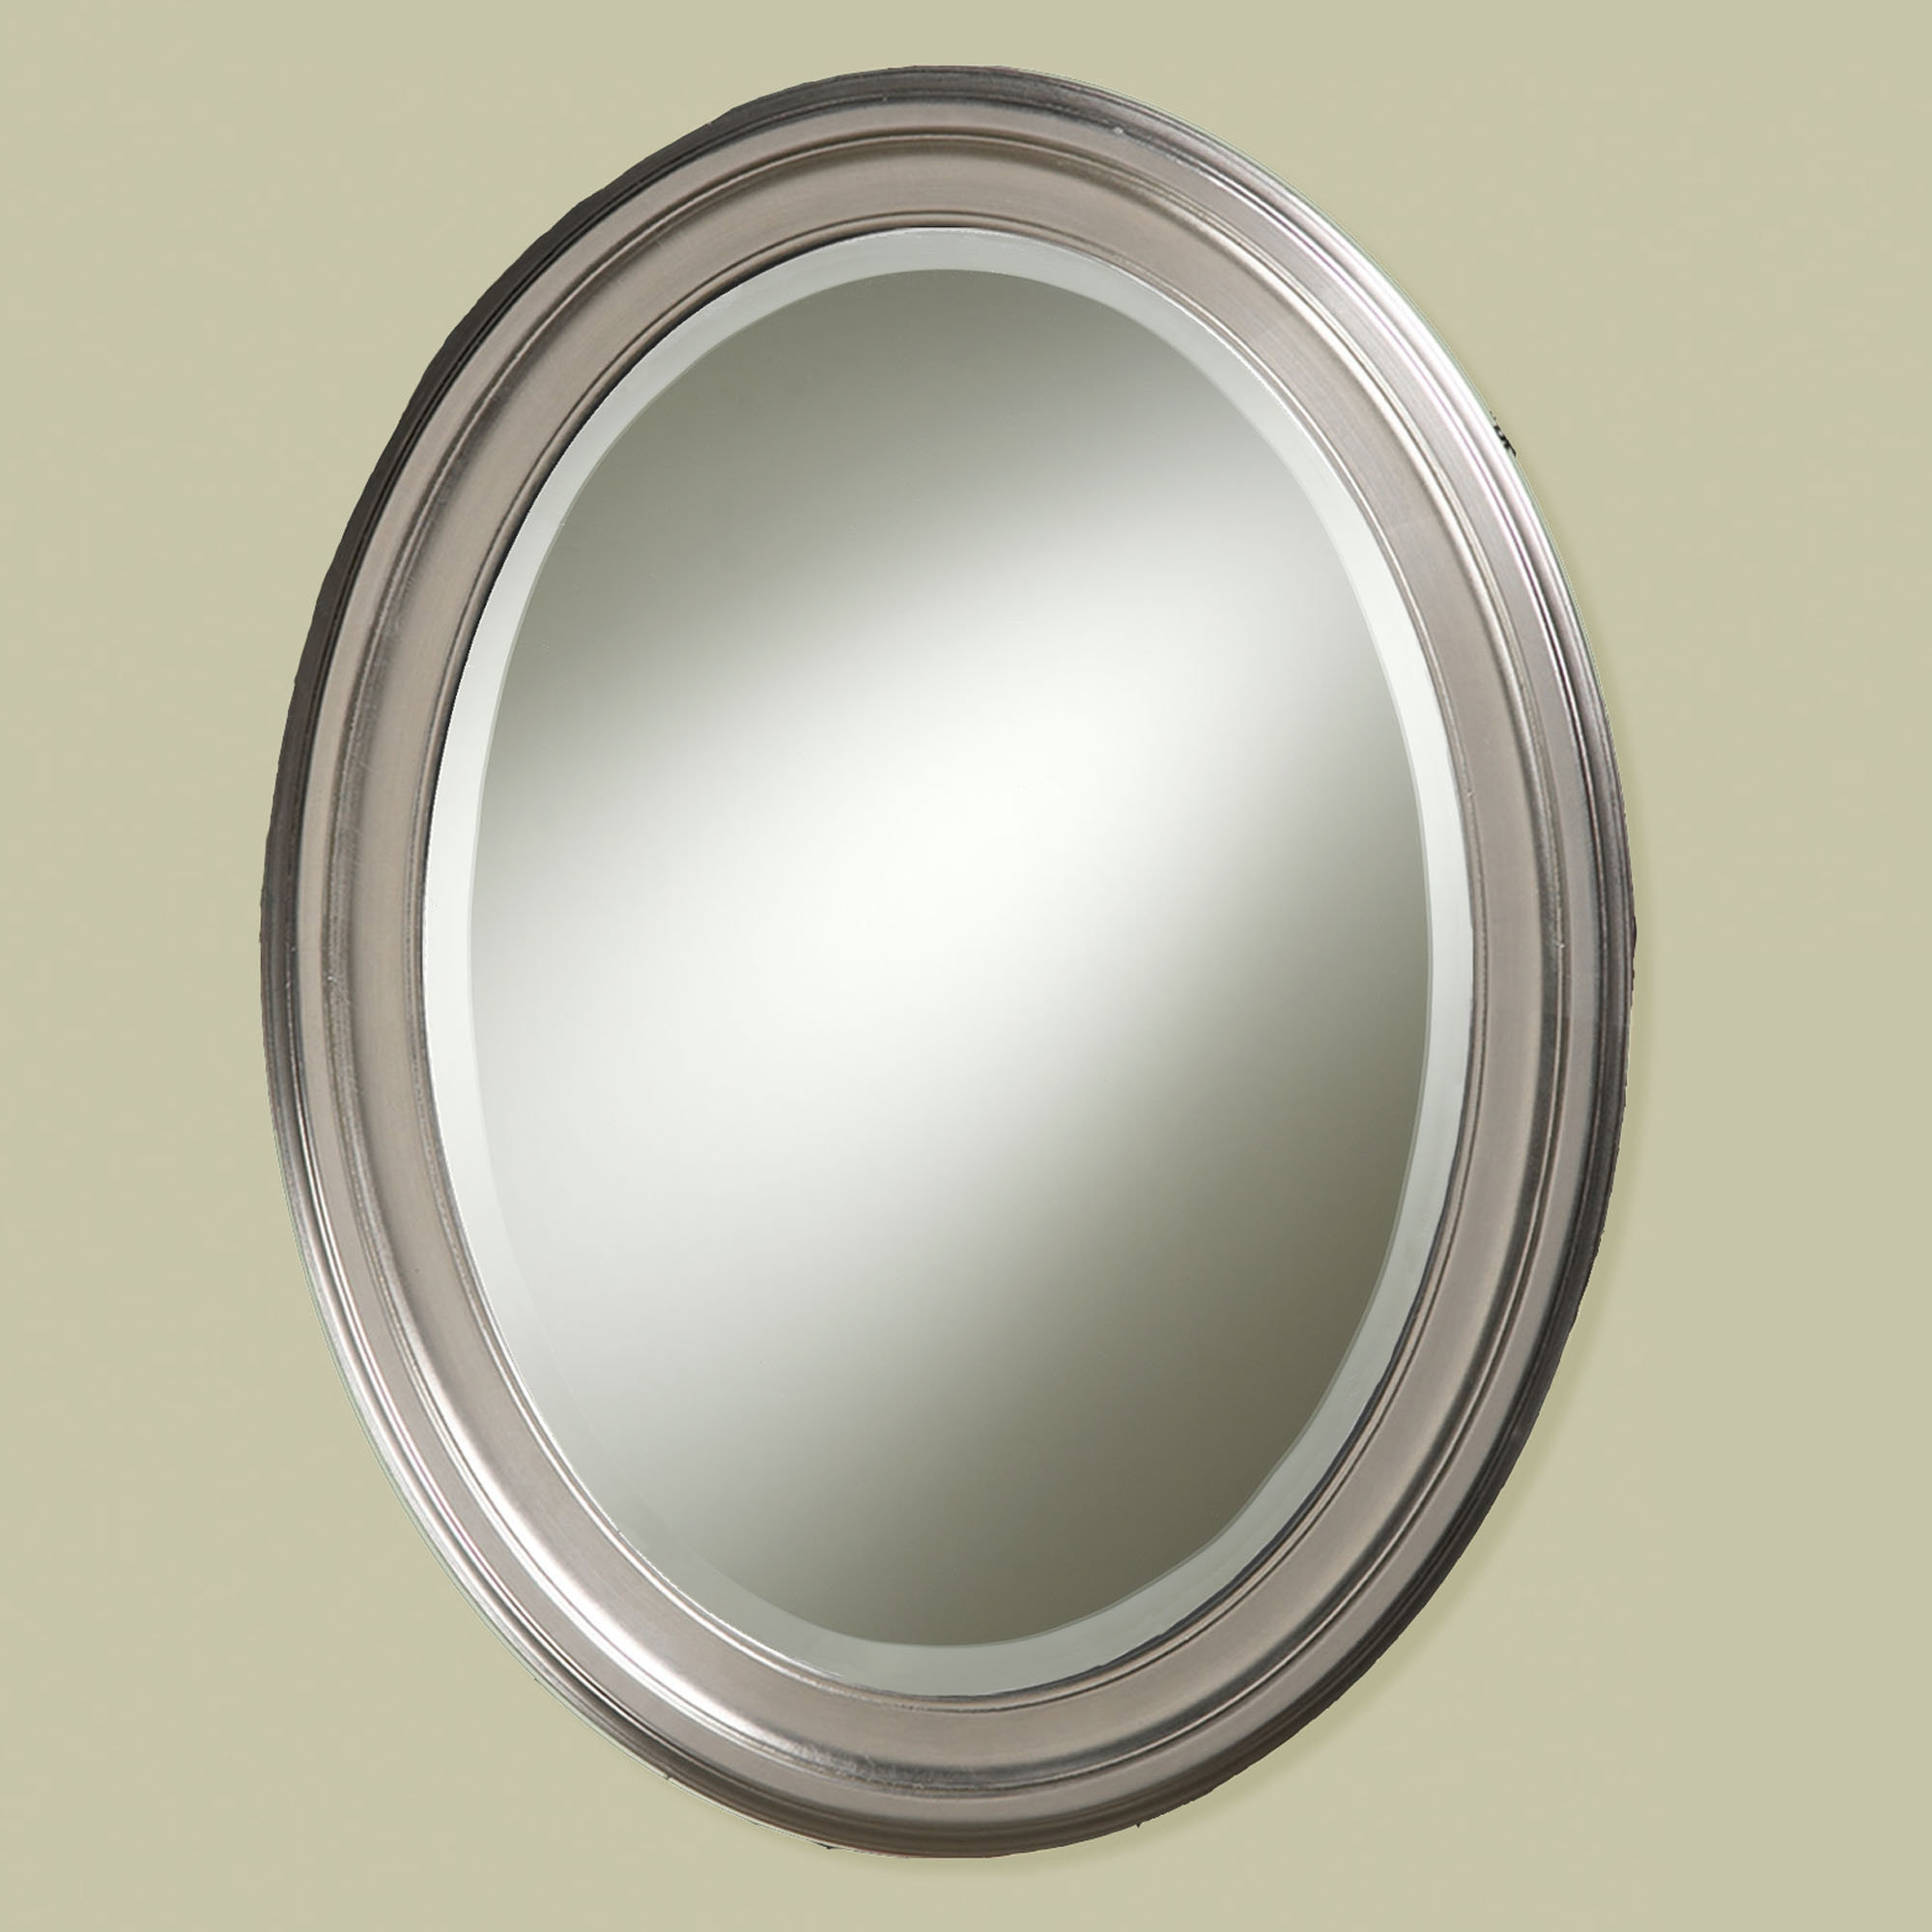 Oval Wall Mirrors Mirrors Uk With Stylish Loree Brushed Nickel Throughout Black Oval Wall Mirror (Image 11 of 15)